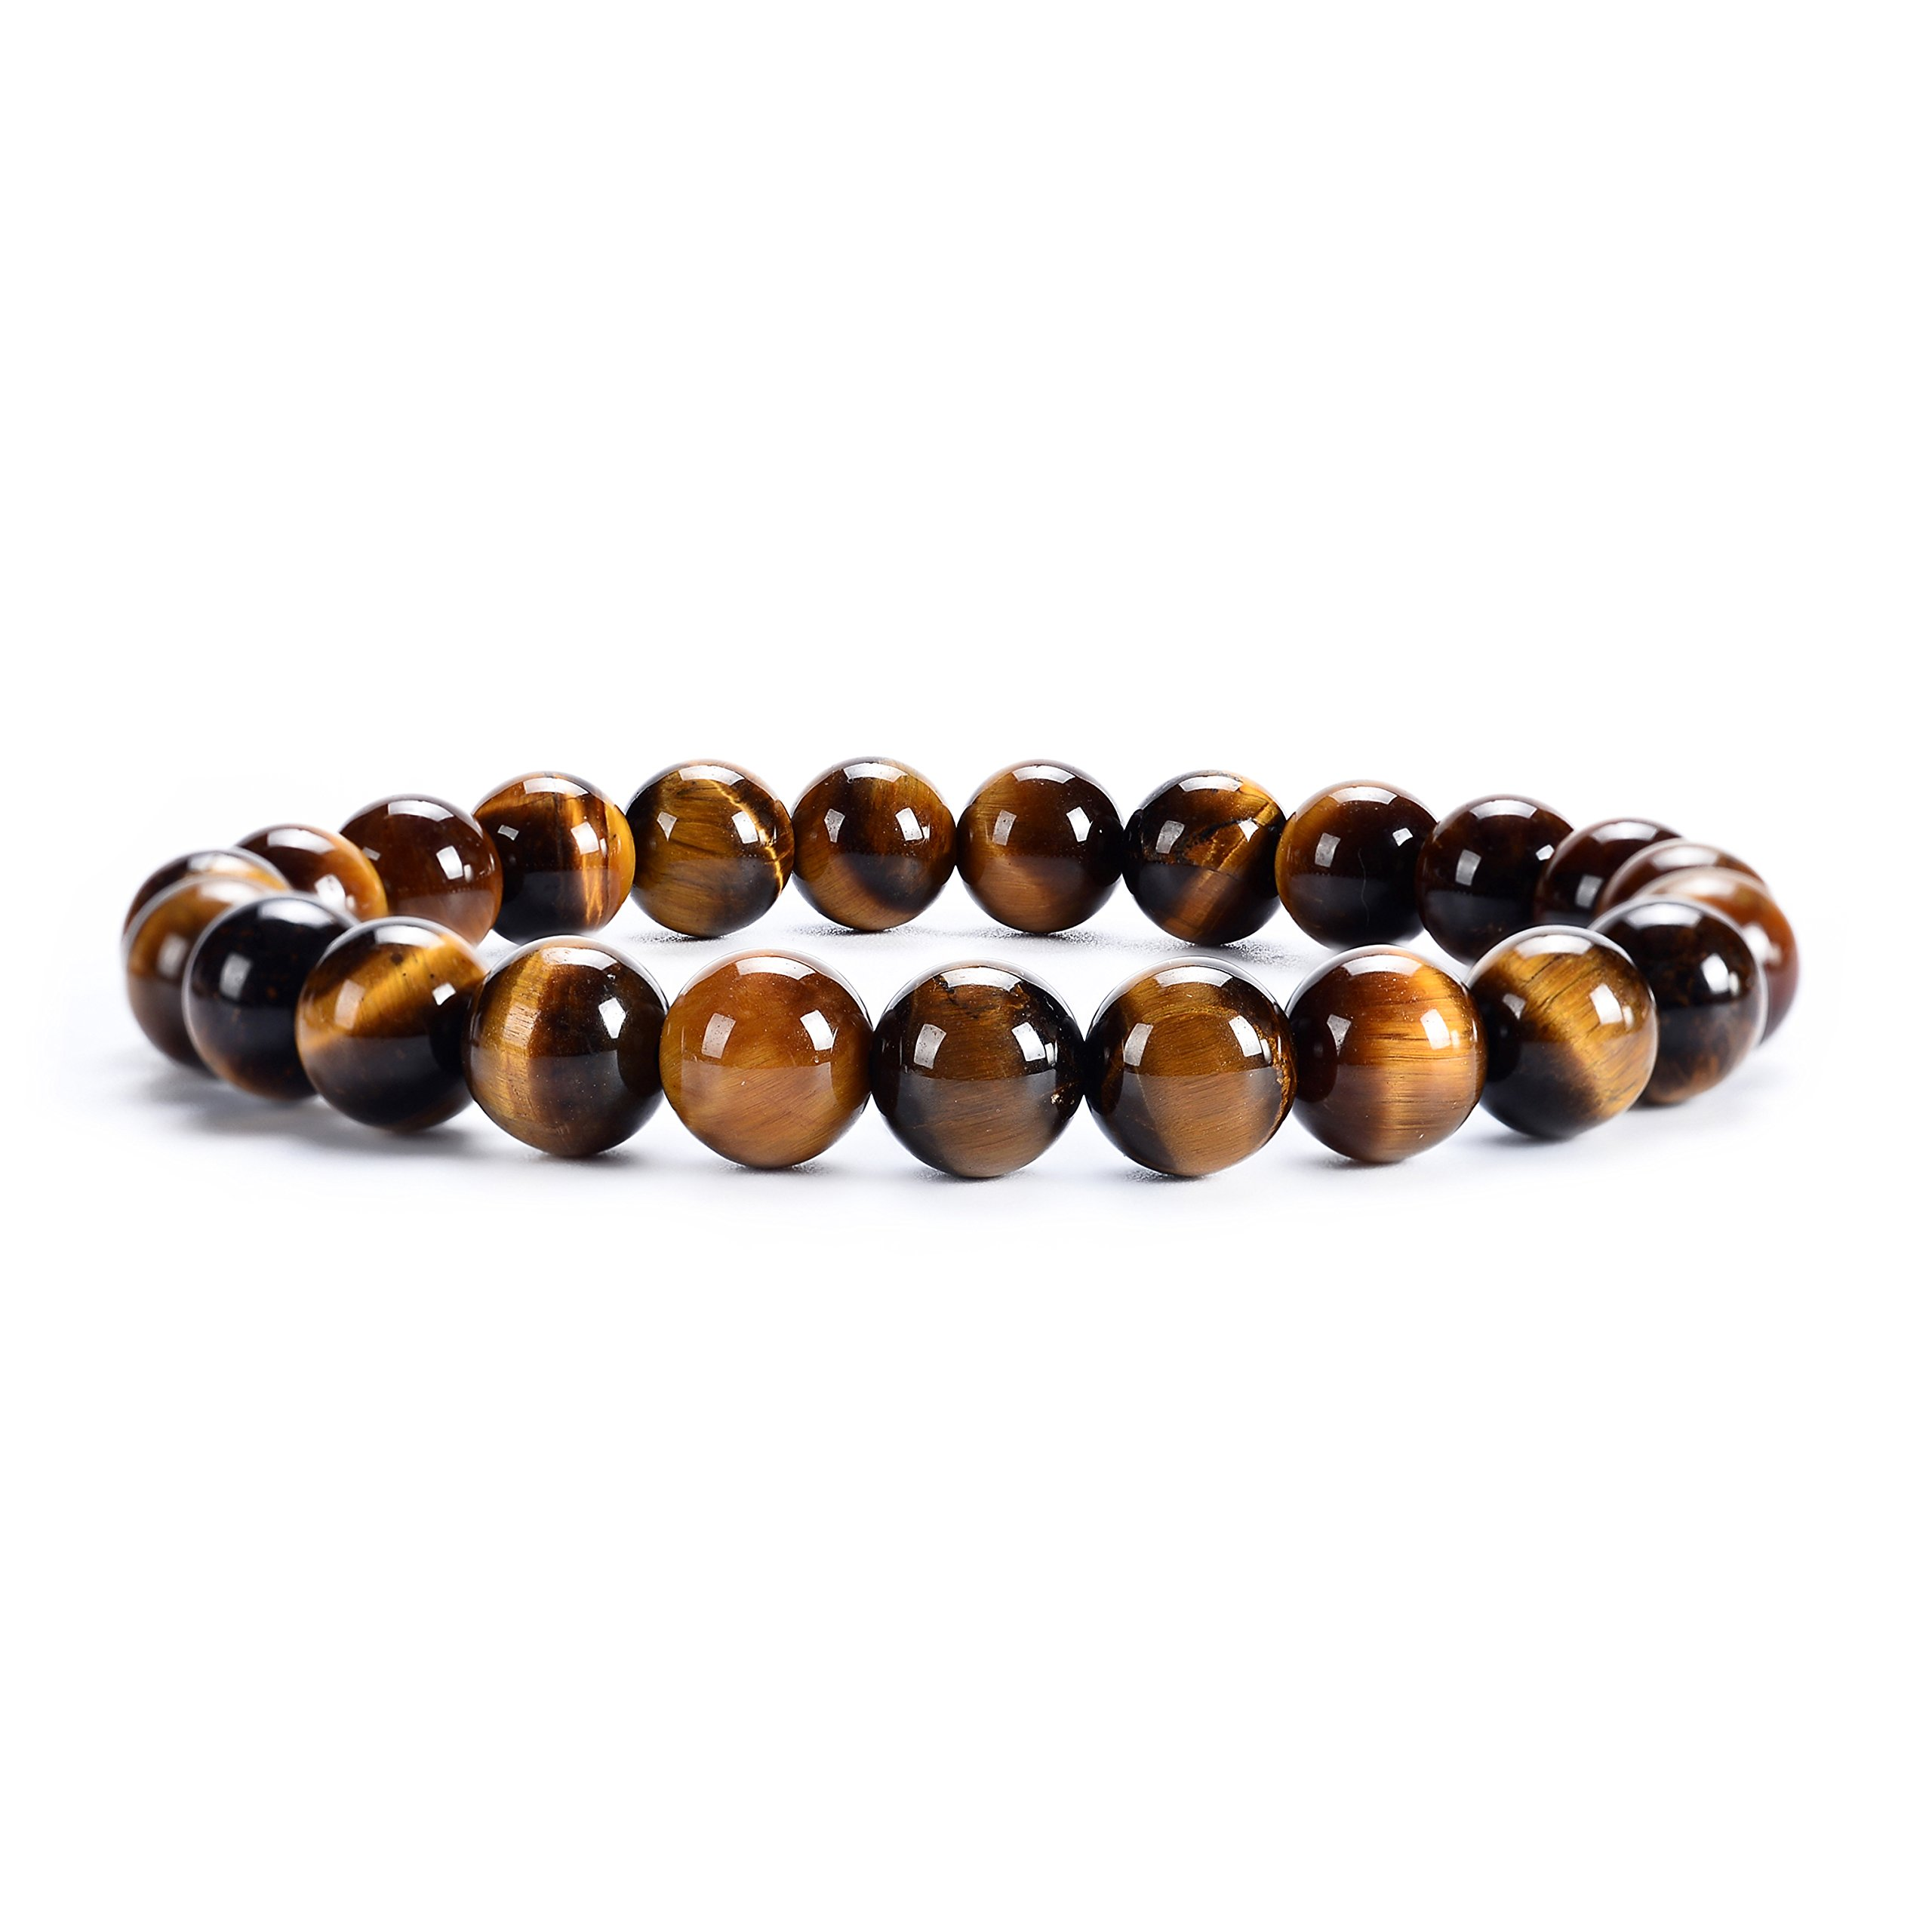 Cherry Tree Collection Natural Semi-Precious Gemstone Beaded Stretch Bracelet 8mm Round Beads 7'' (Tiger's Eye) by Cherry Tree Collection